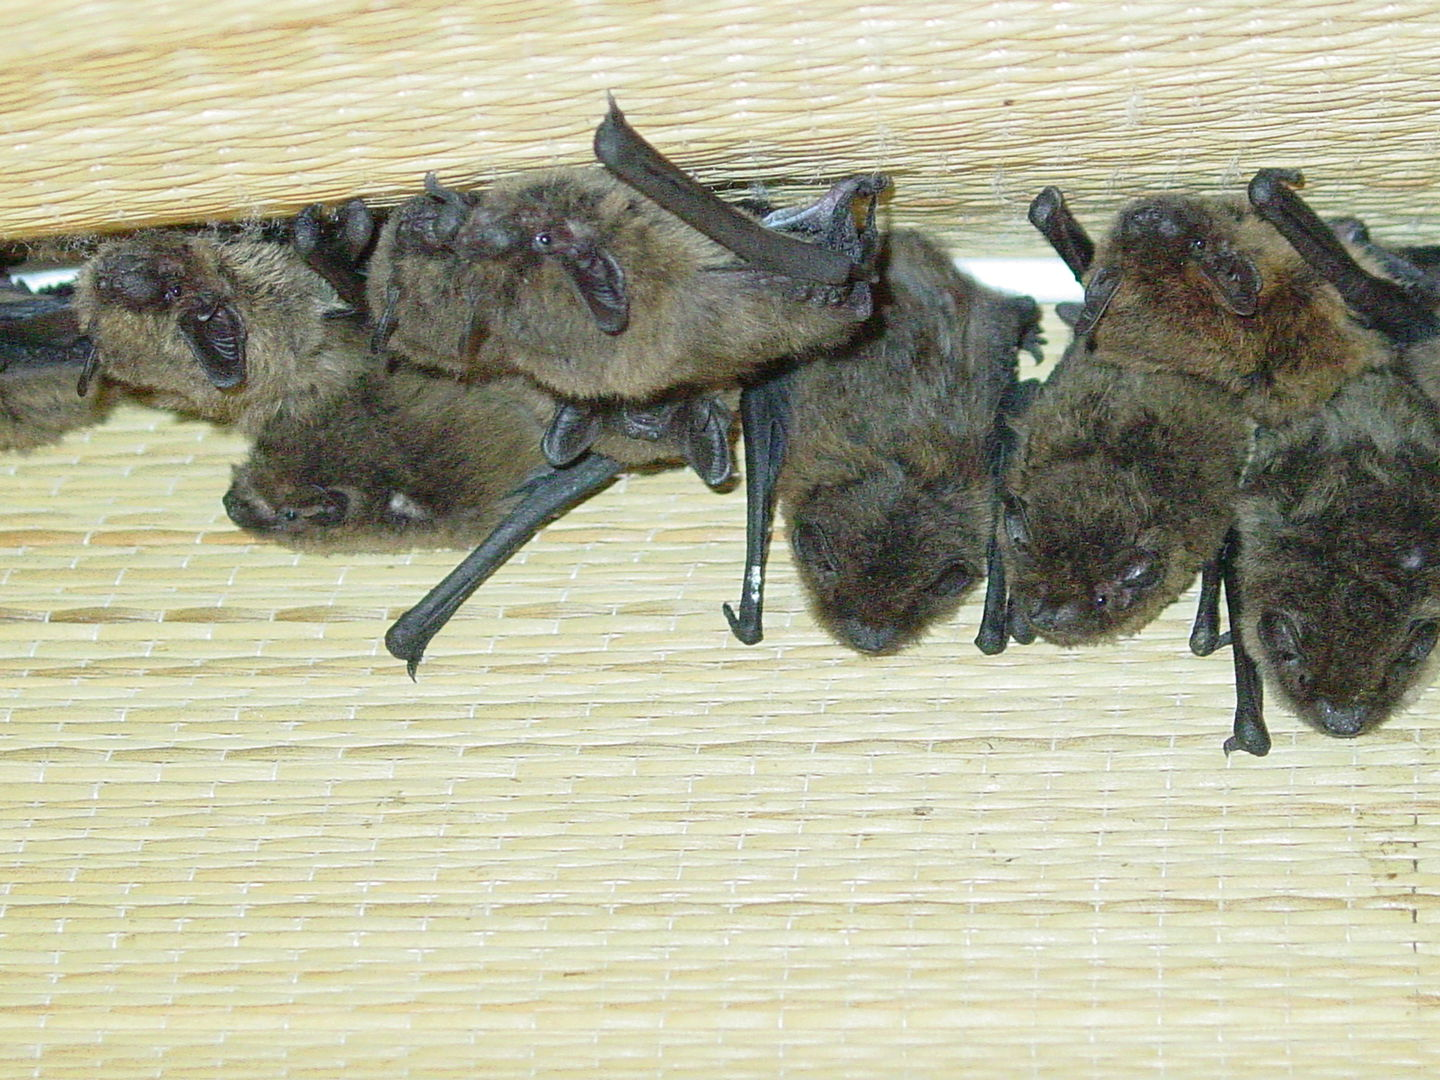 Das Bild zeigt eine Gruppe von Zwergfledermäusen im Quartier. Die Tiere hängen dicht zusammen. The picture shows a group of Pipistrellus pipistrellus in the quarter. The animals are close together.